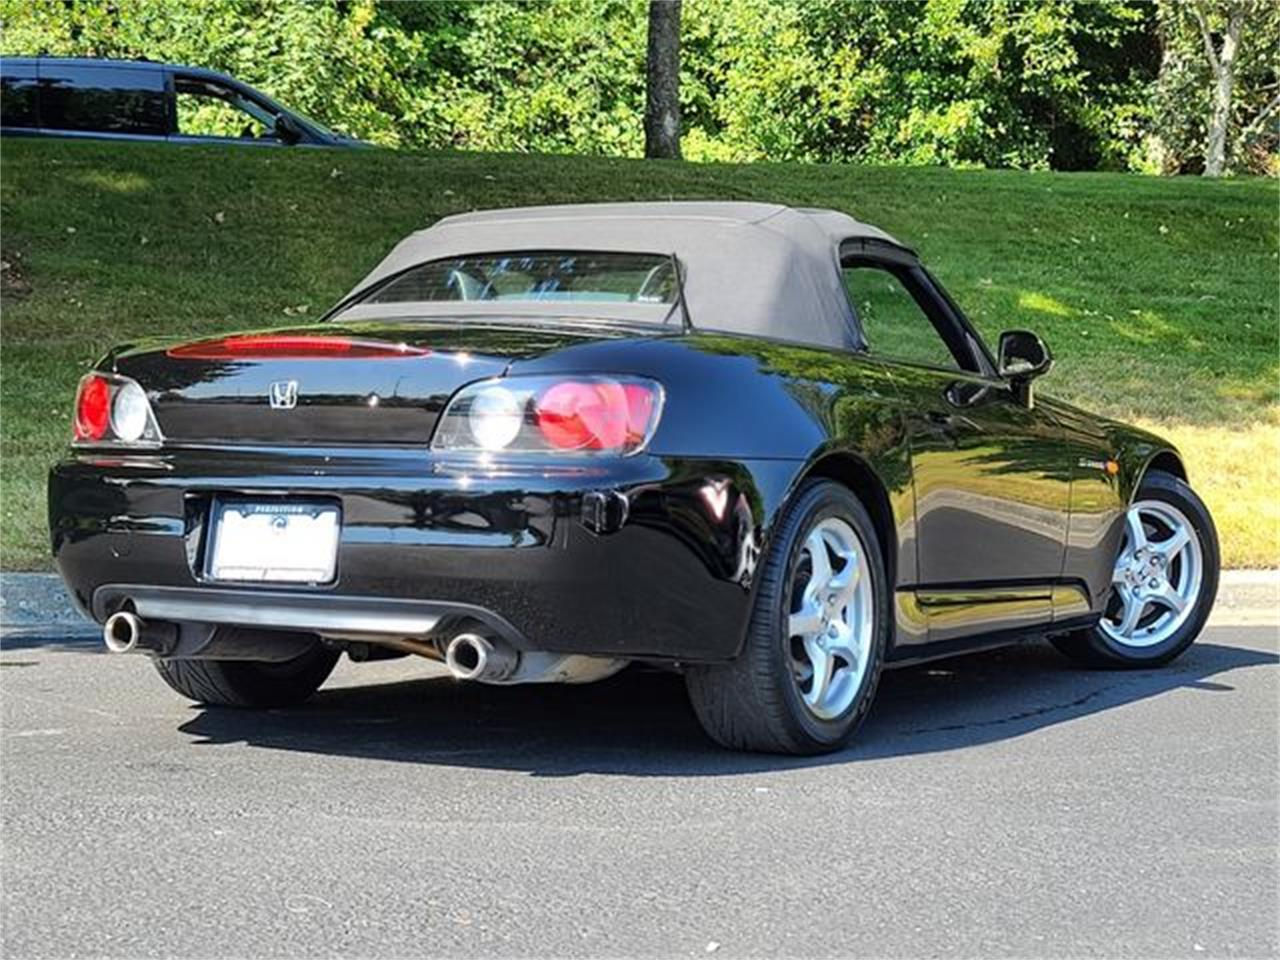 2000 Honda S2000 (CC-1379922) for sale in Seattle, Washington